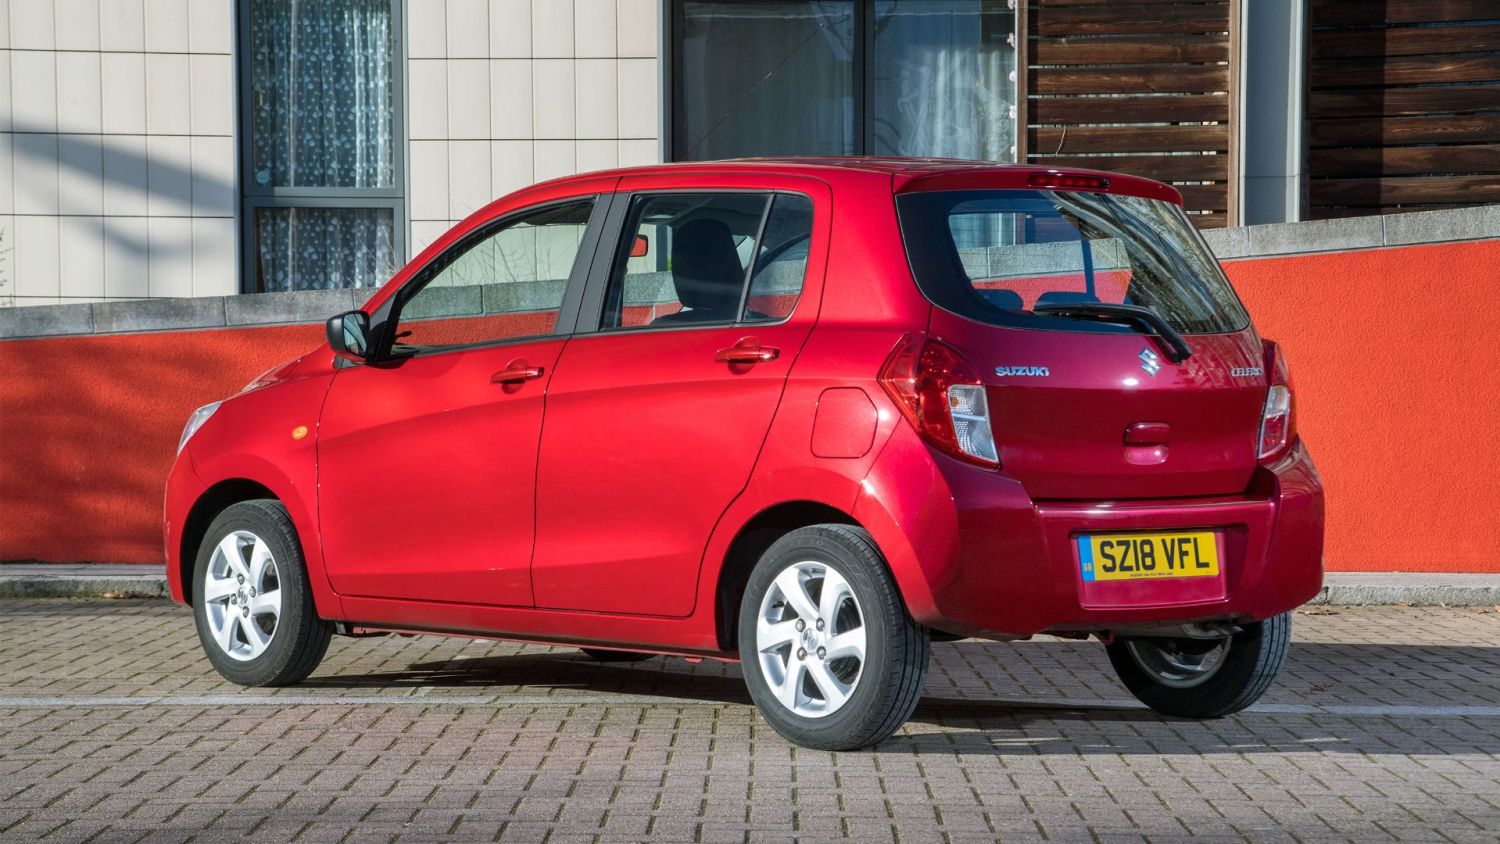 Suzuki Celerio off sale in the UK